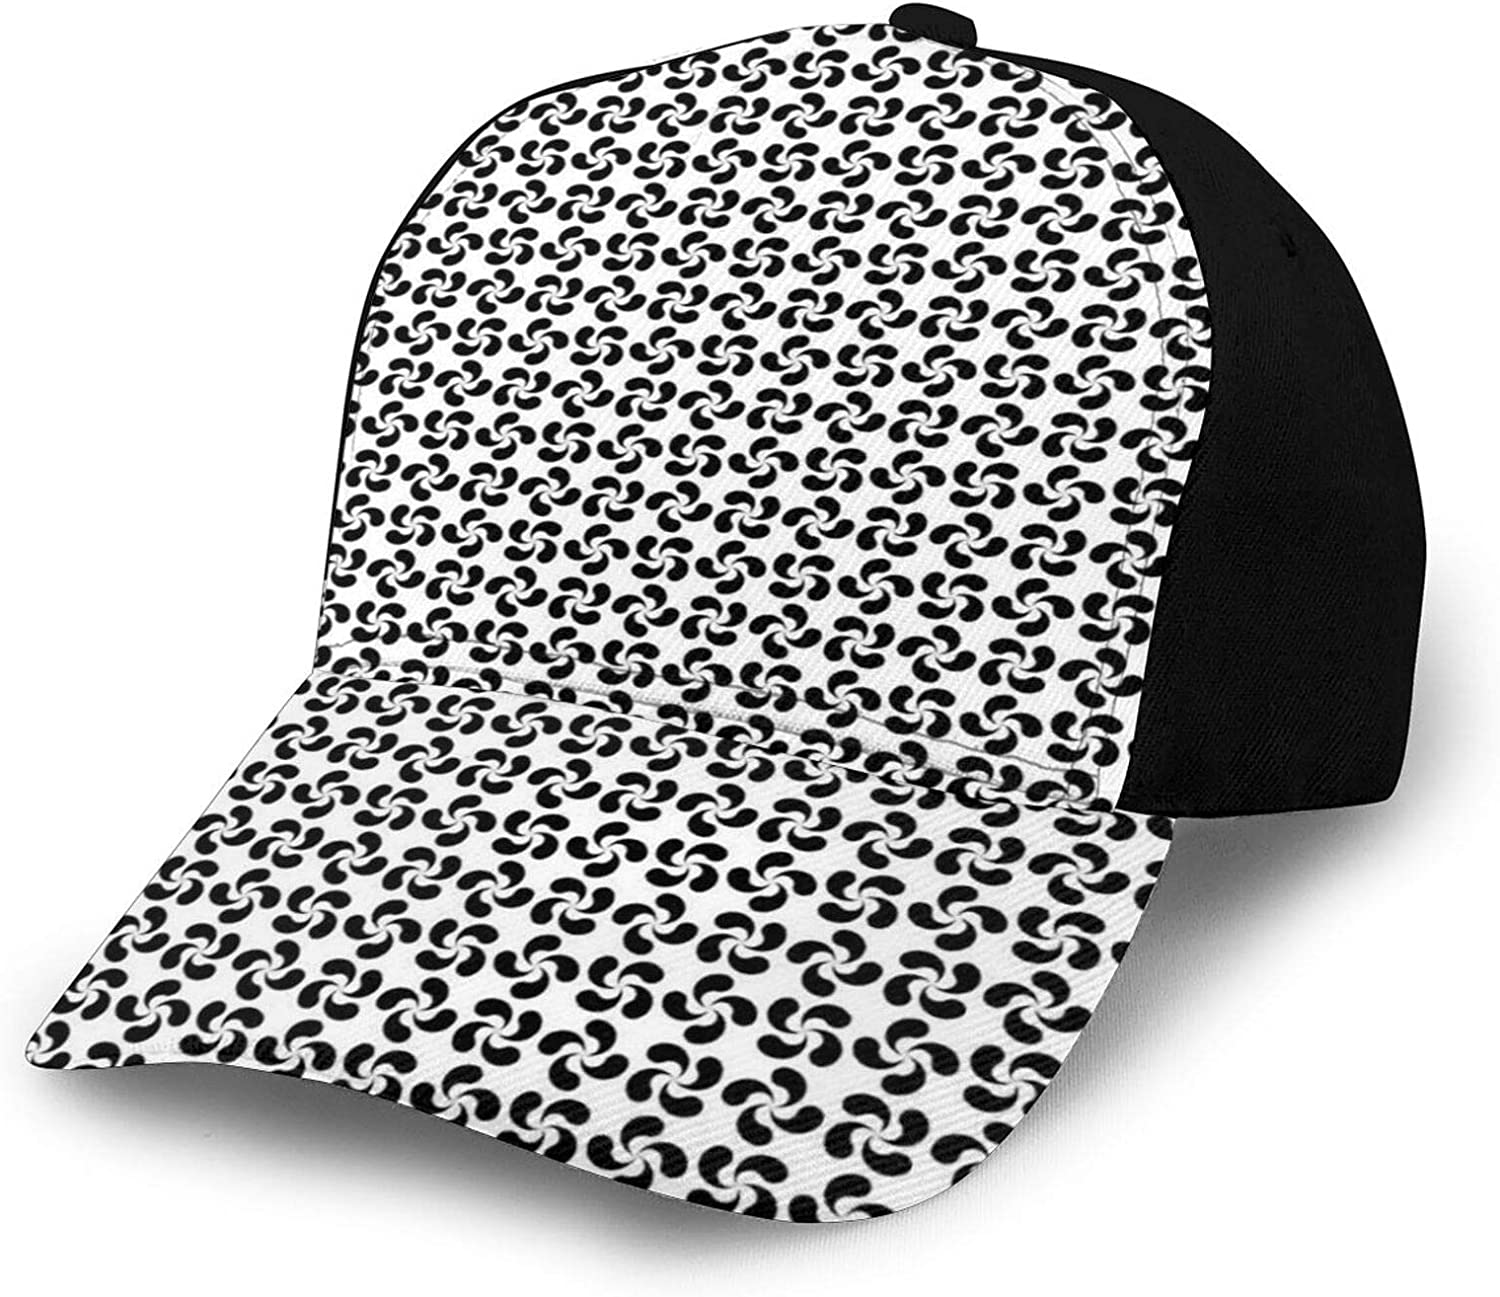 Unisex Curved Edge Baseball Cap Leaves Flower shipfree Shaped Challenge the lowest price of Japan Wind Wheels